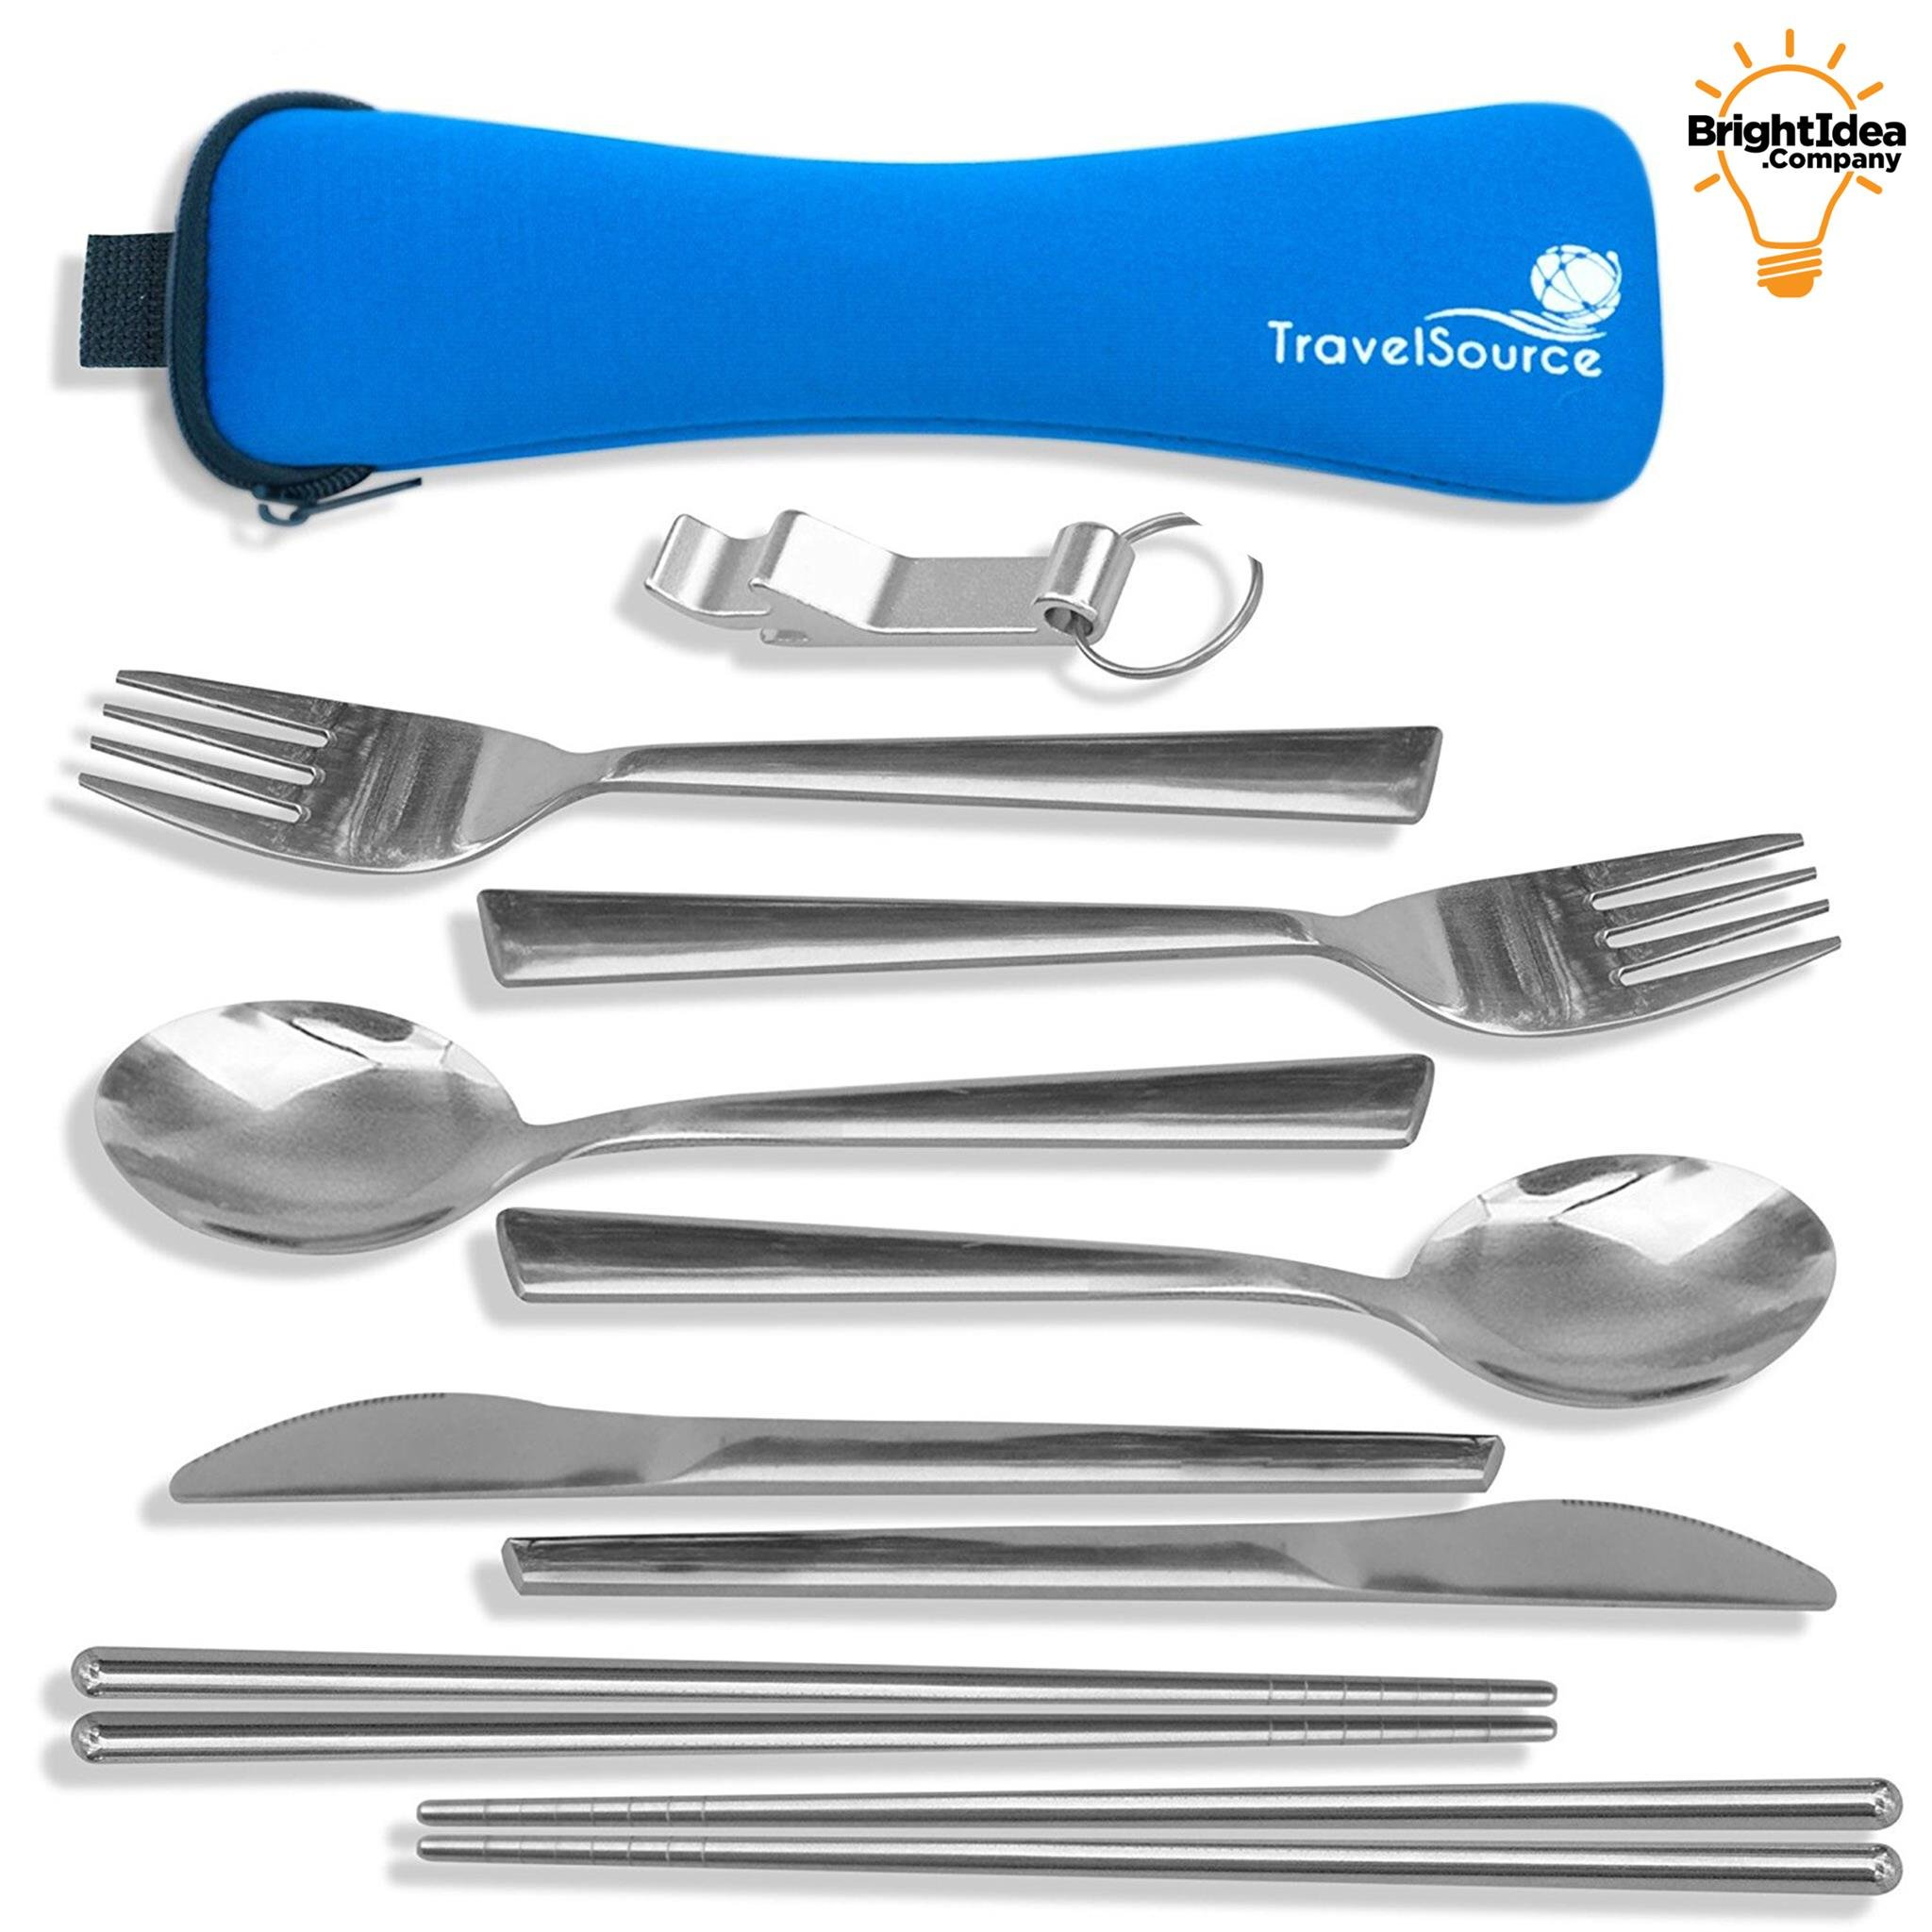 TravelSource - 2-Person Stainless-Steel Camping Eating Utensils Set - Portable Mess Kit + Case with Backpack Hanging Strap, Chopsticks & Bottle Opener